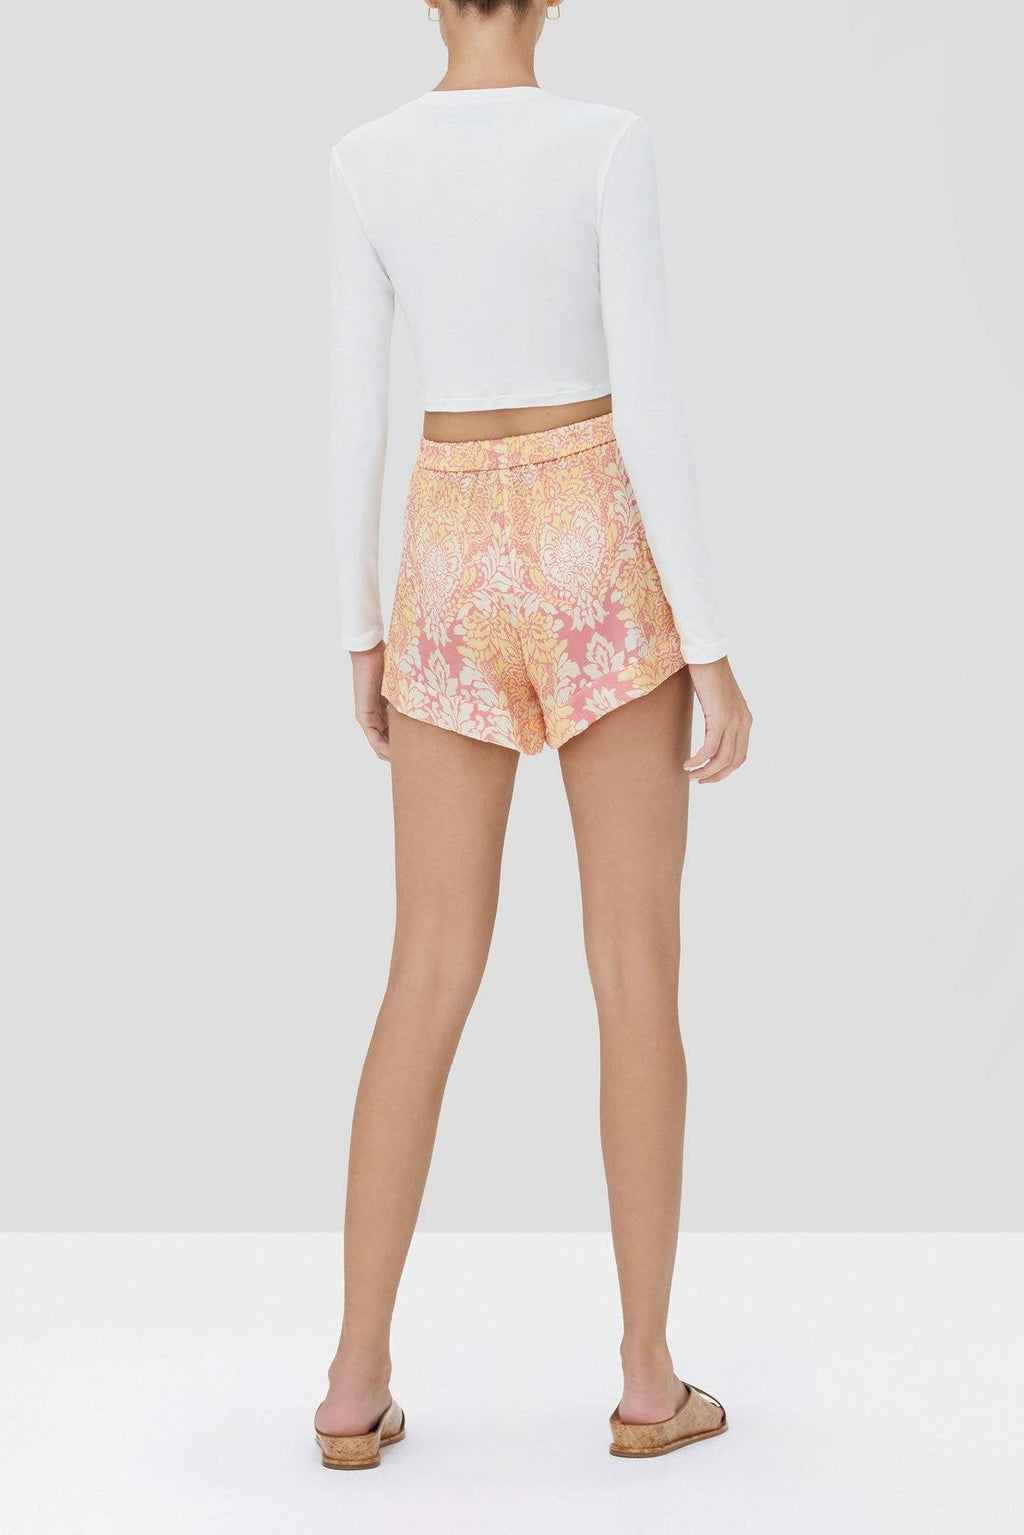 ALEXIS | Darra Shorts - Damask Rose